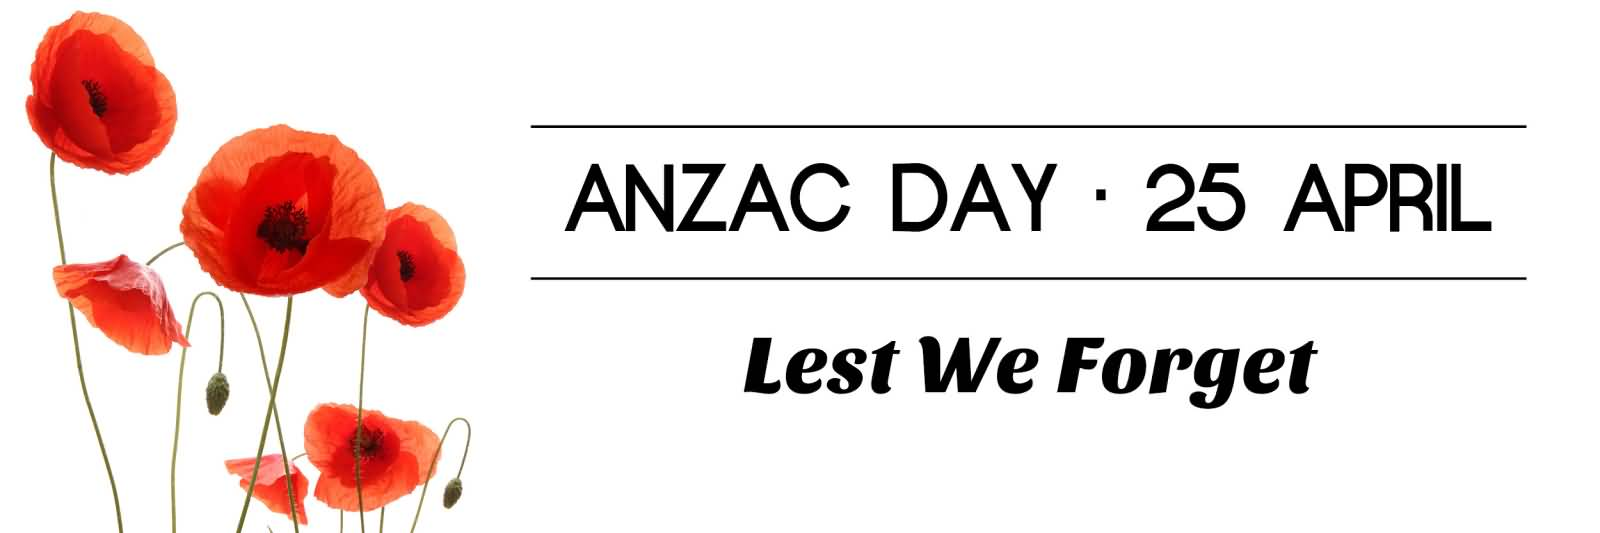 45+ Amazing Anzac Day Wish Pictures